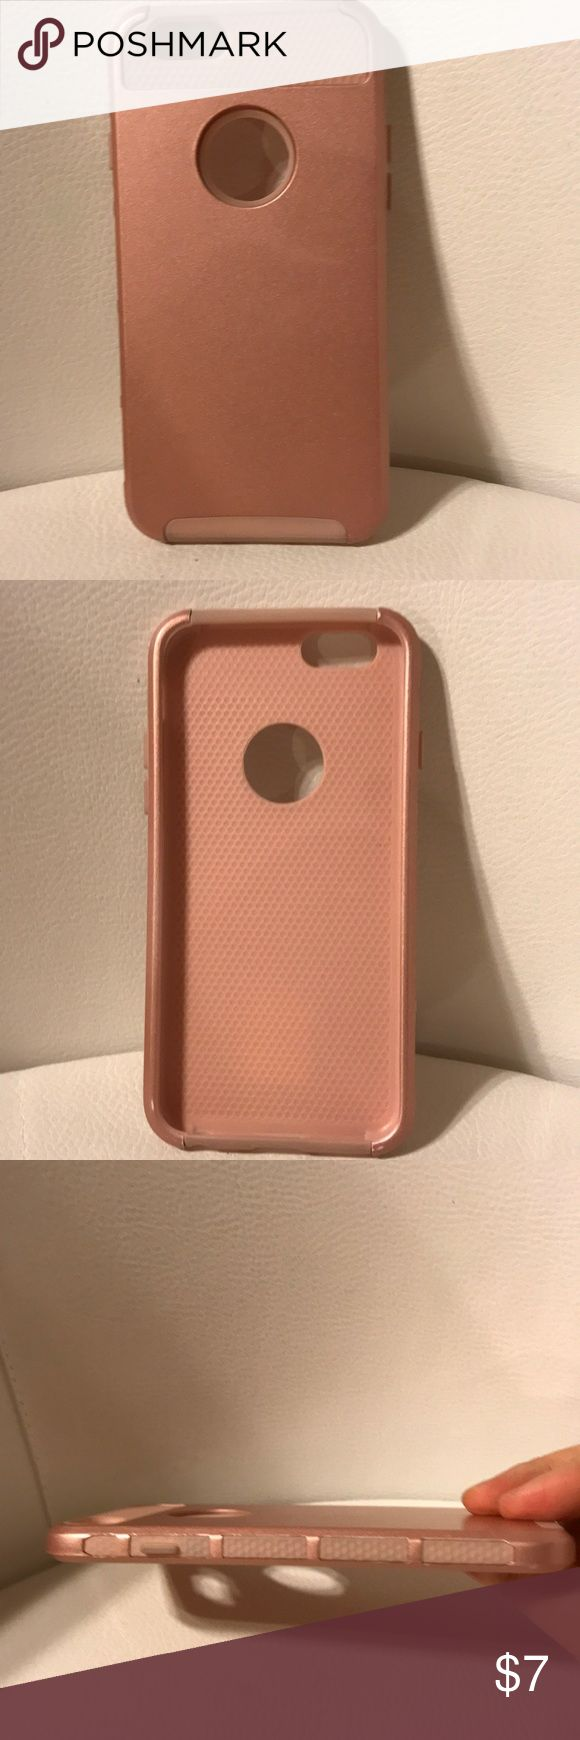 iPhone 6,6S Case Pink in great condition. Offers welcome. iPhone 6 , 6s Case, MTRONX Hybrid Hard PC & Soft Silicone Heavy Duty Rugged Bumper Shockproof Anti-Scratch Protective Back Cover Cases for Apple iPhone 6, iPhone 6s-Rose Gold(HC-RGRG) Accessories Phone Cases